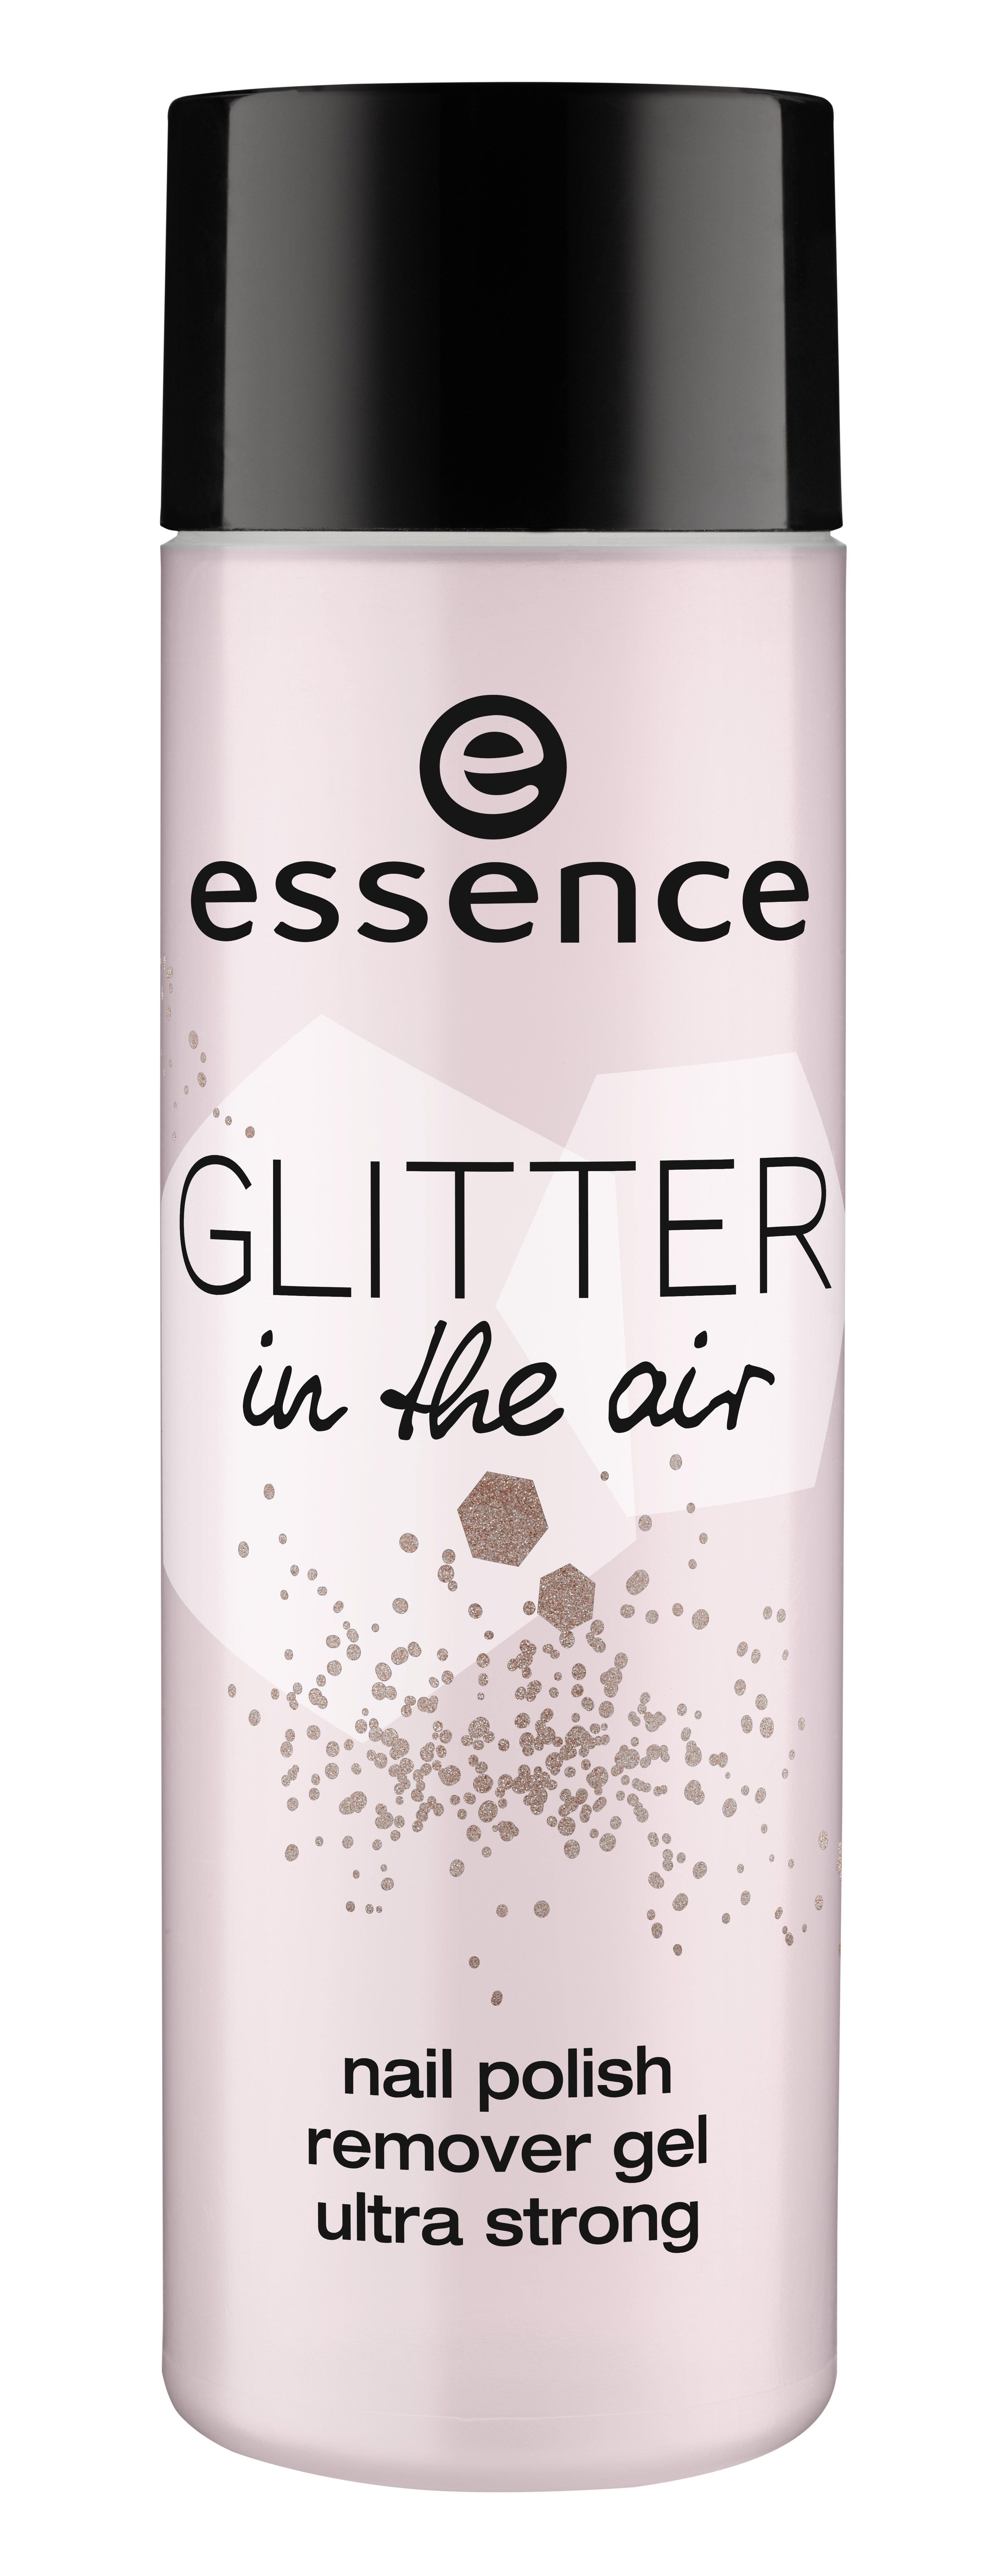 nail polish-remover-gel-ultra-strong-essence-glitter-in-the-air